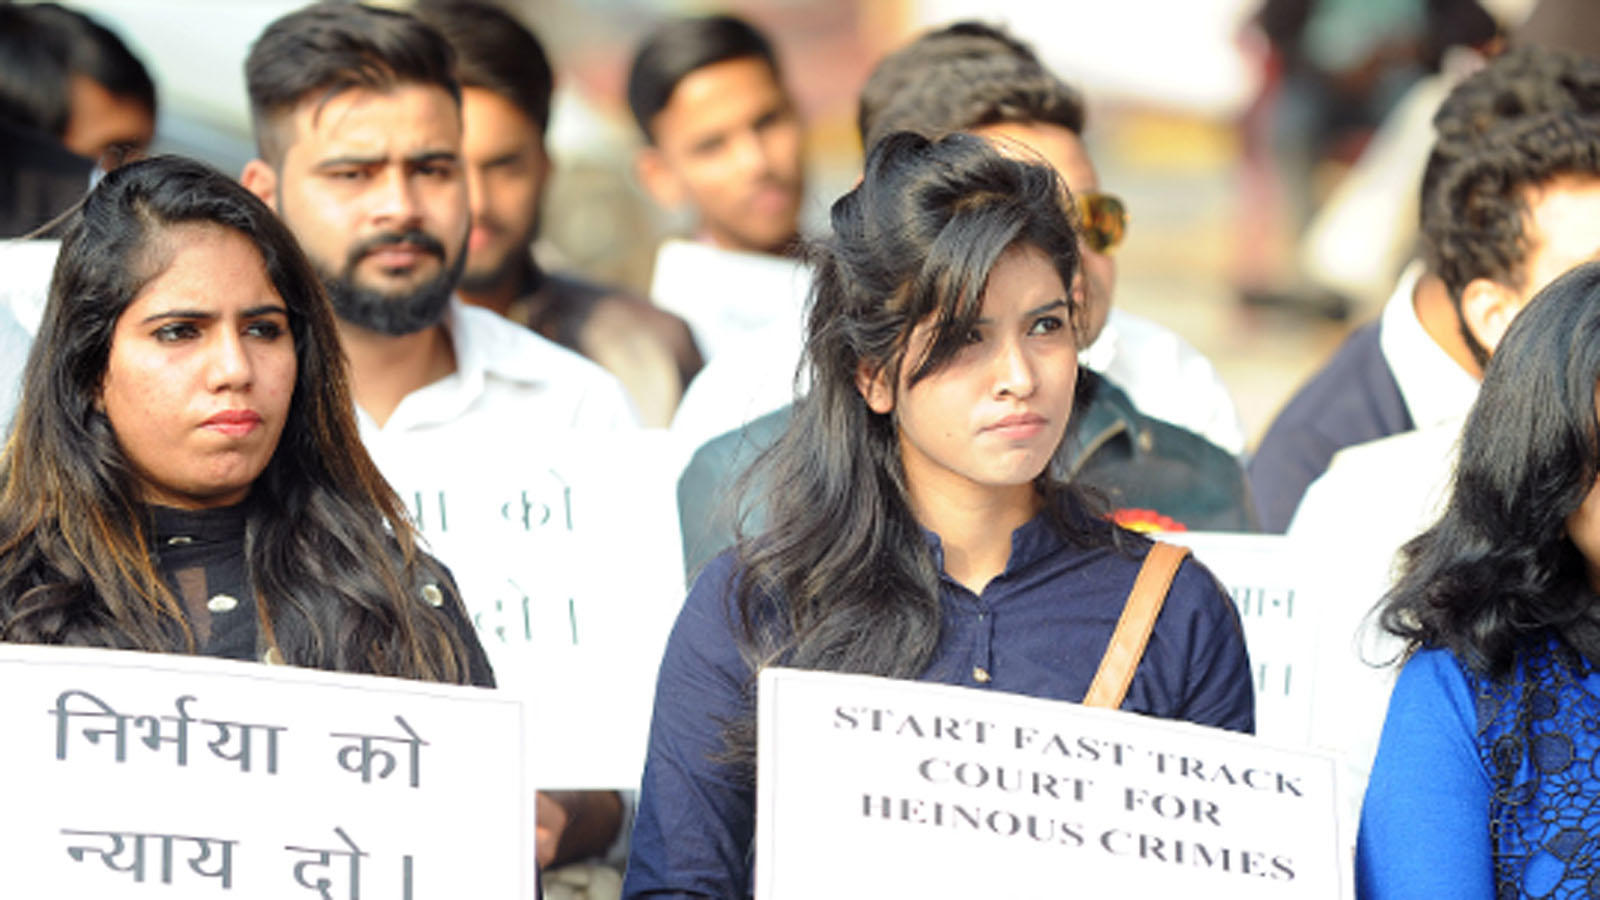 nirbhaya-case-pil-filed-in-sc-to-hang-nirbhayas-convicts-within-month